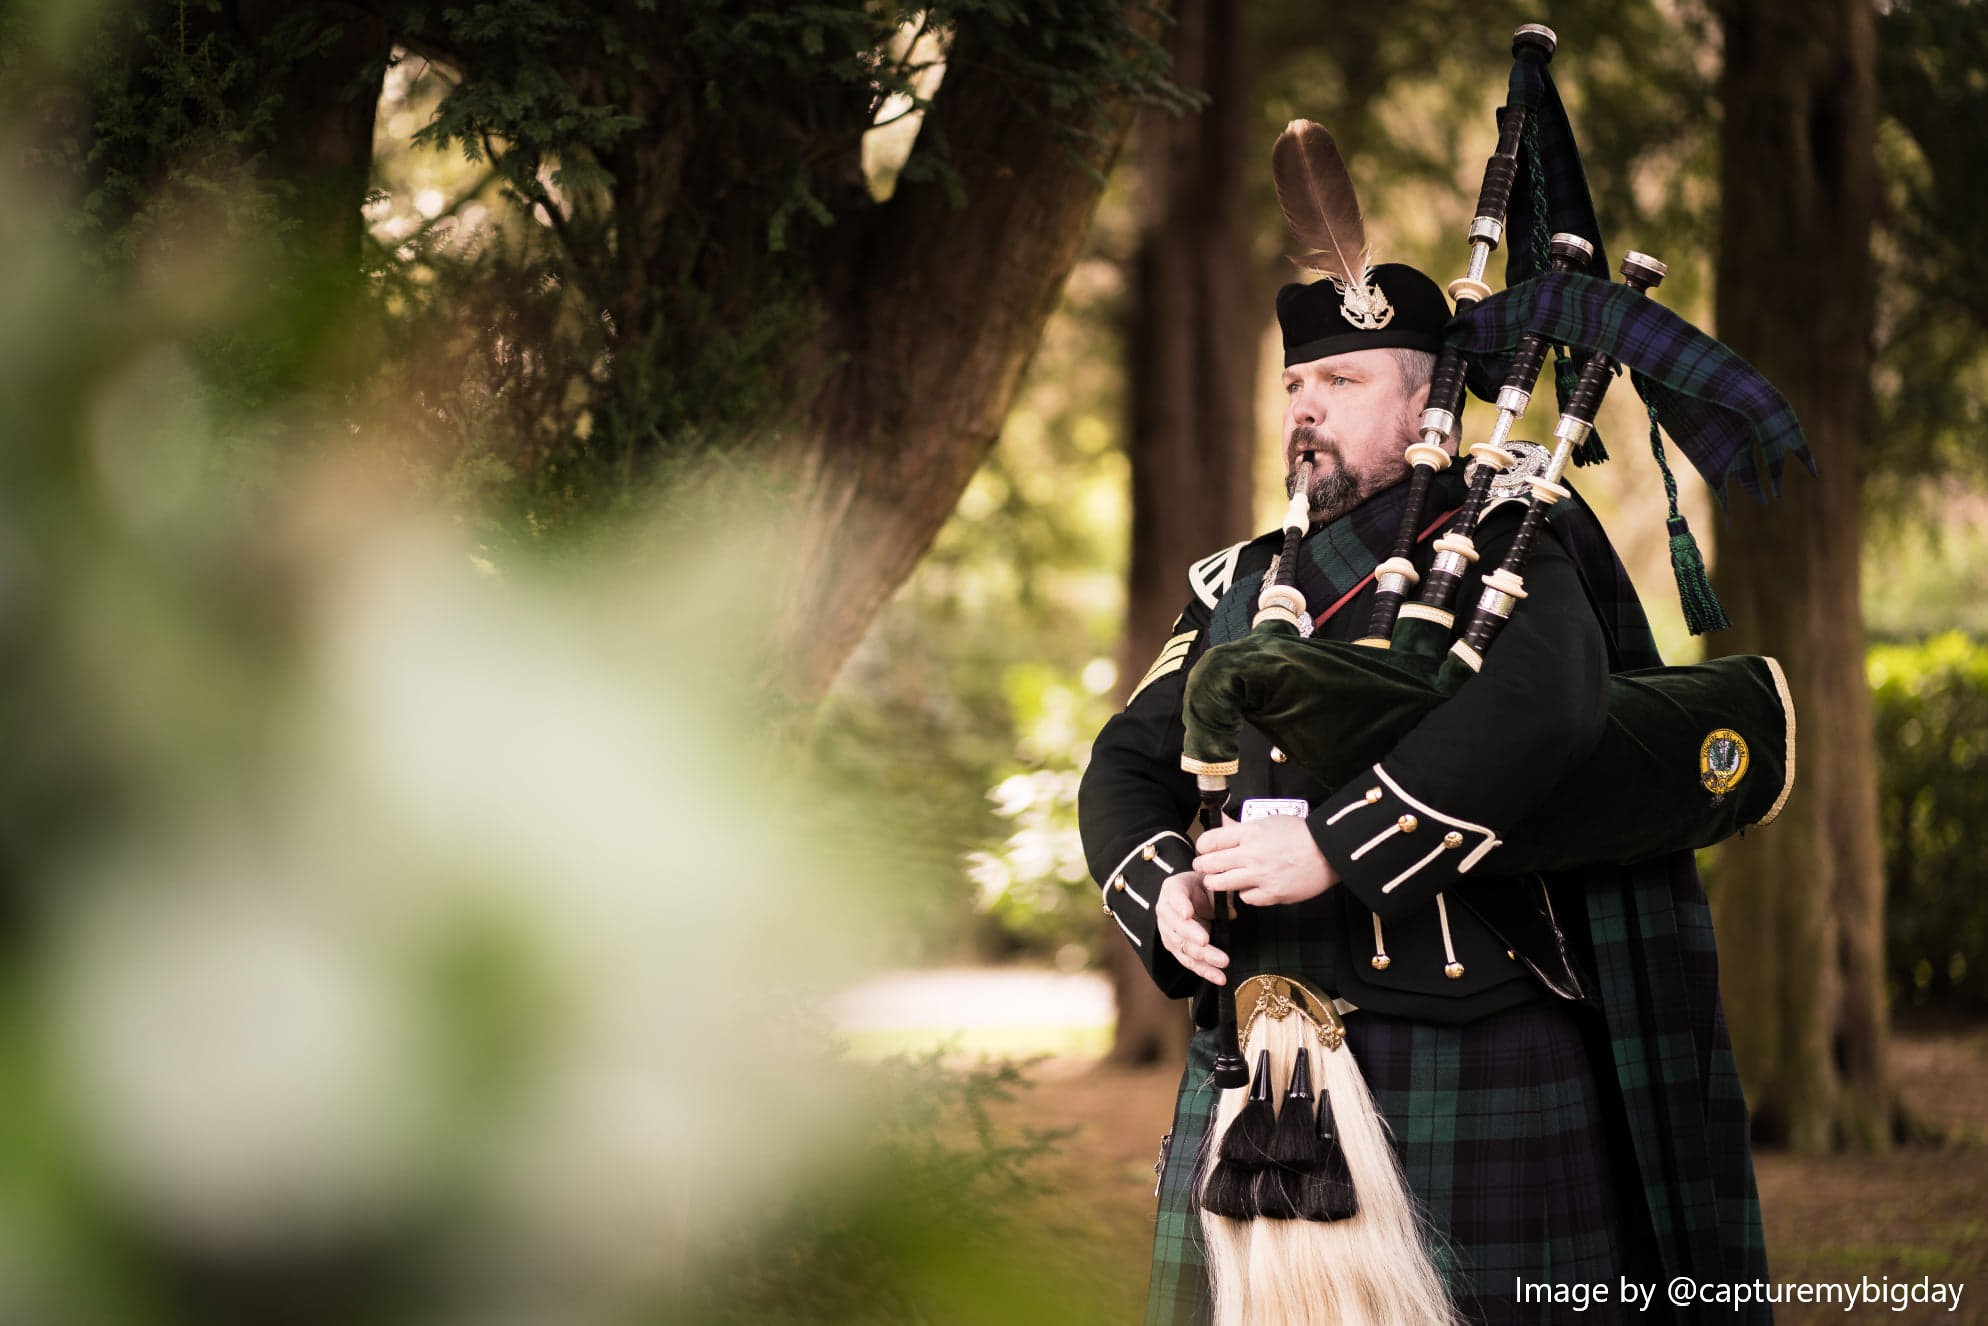 Pipe Band, Piper #3996 Image